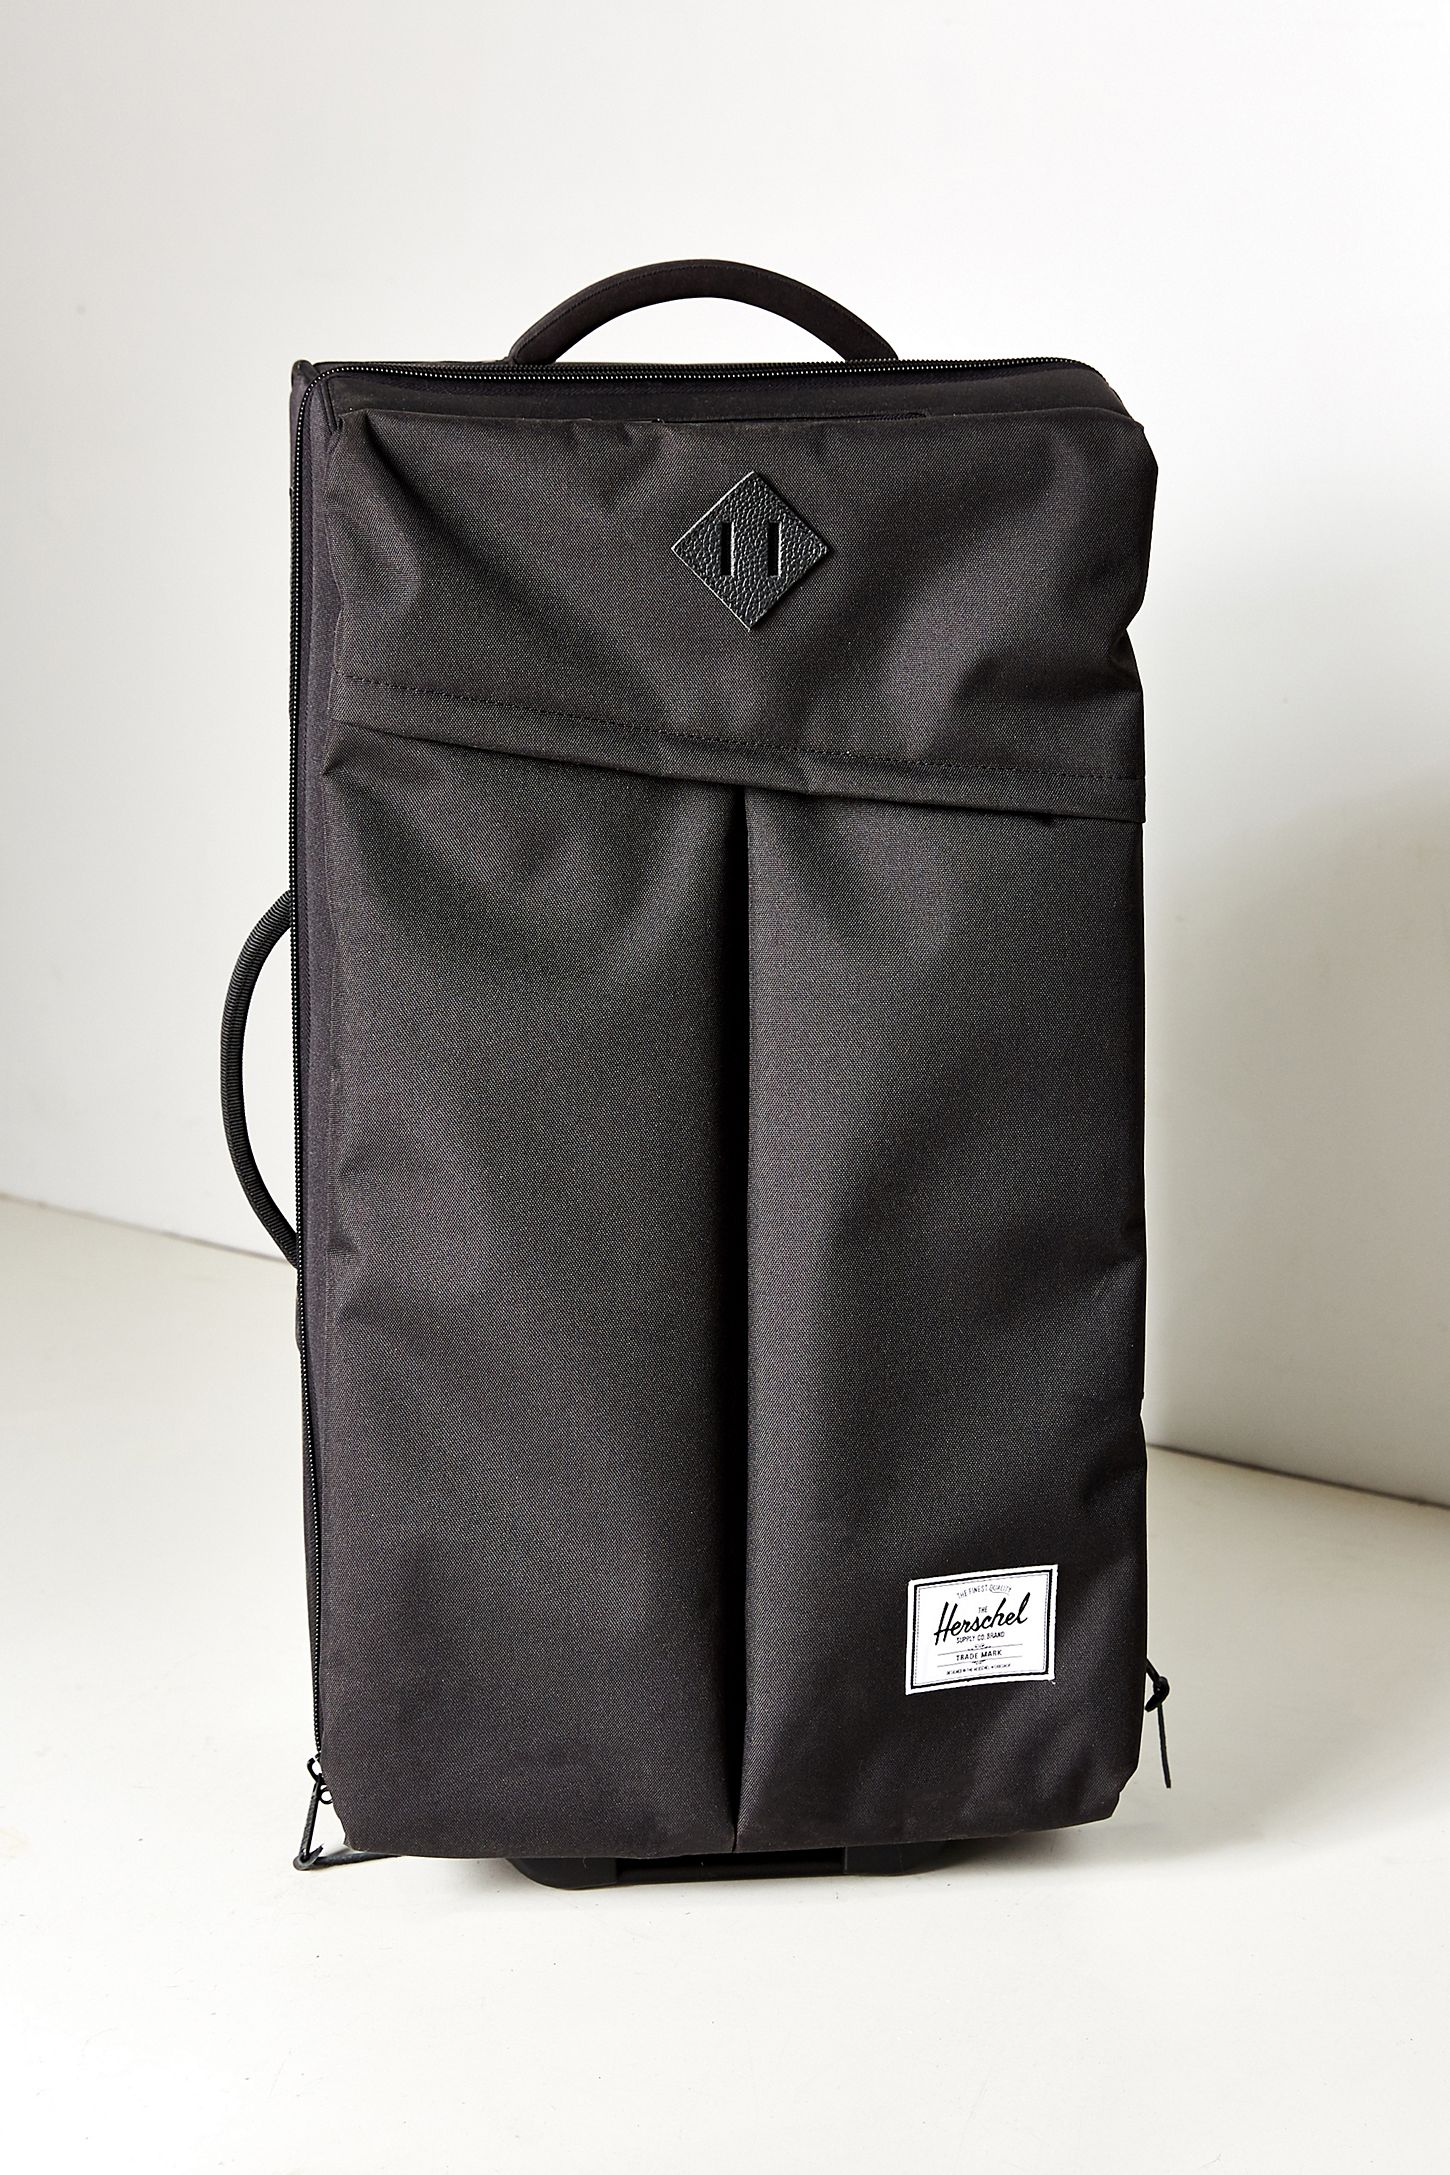 eb077376897 Herschel Supply Co. Parcel Luggage   Urban Outfitters Canada